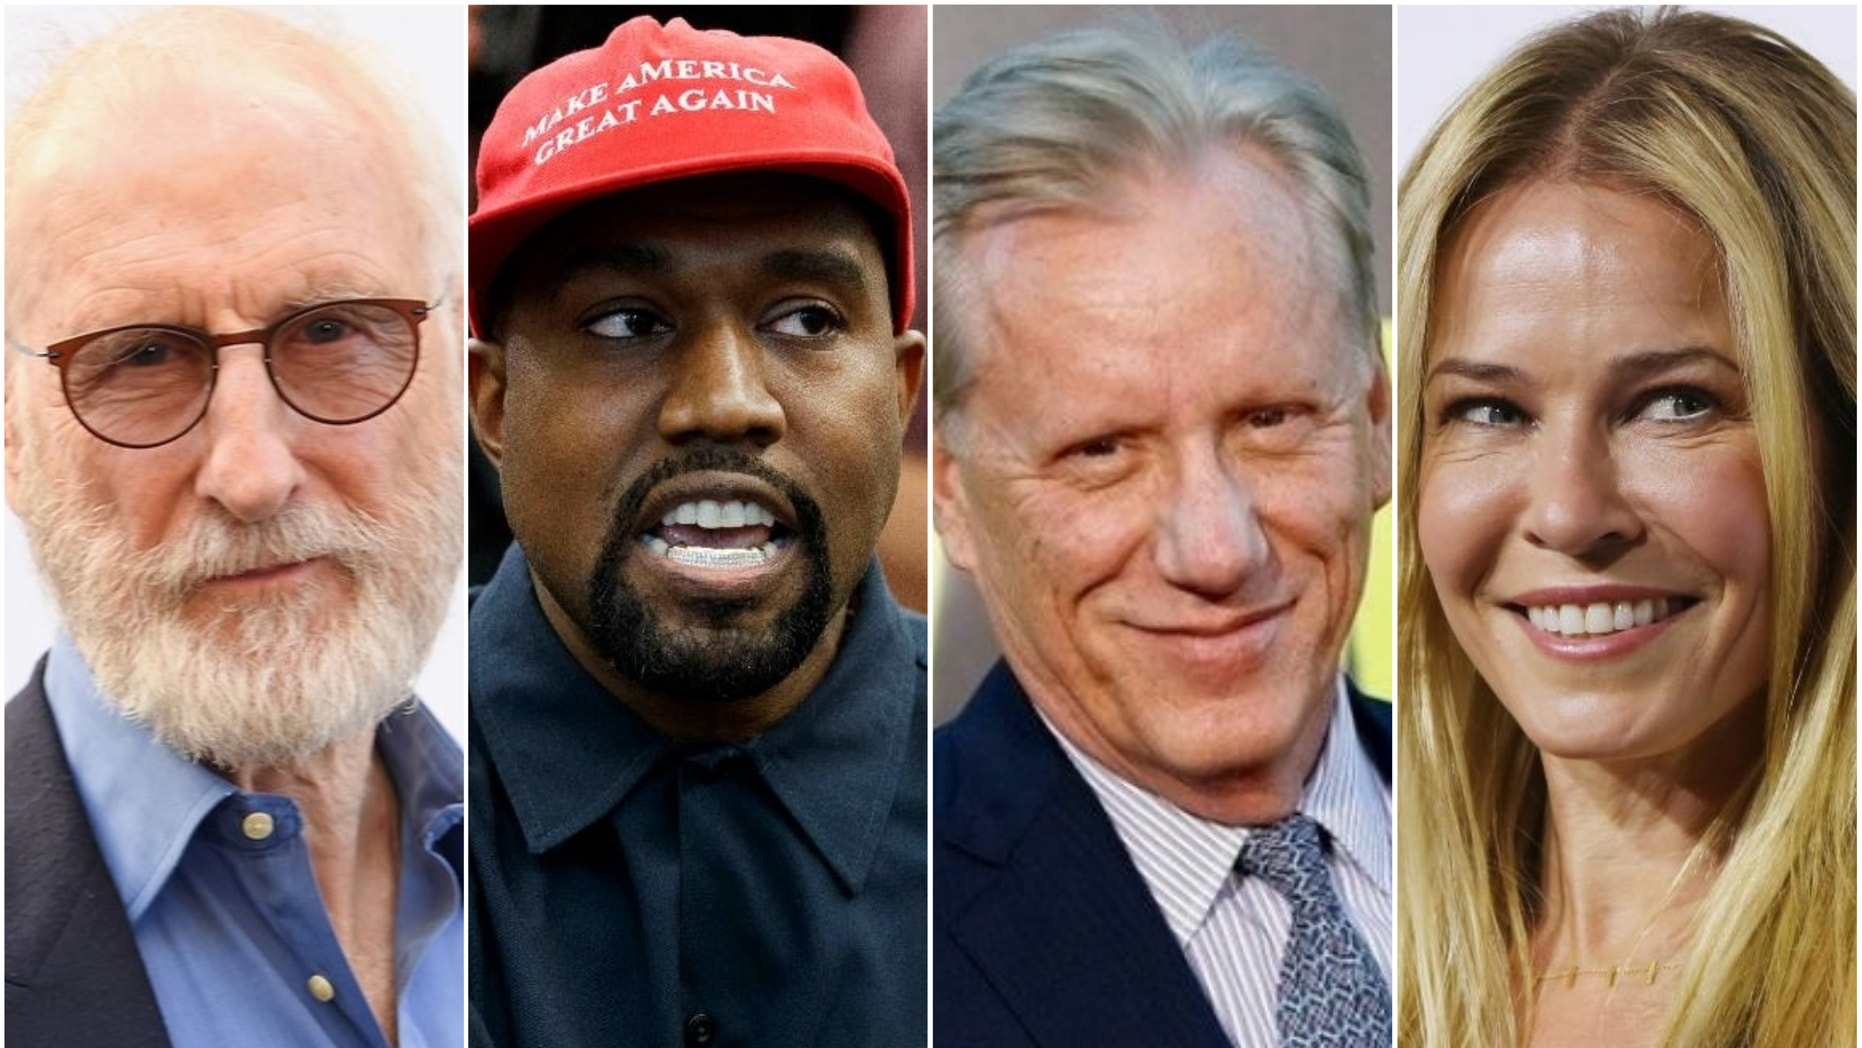 Celebrities are coming out to voice support for their respective parties ahead of election night.